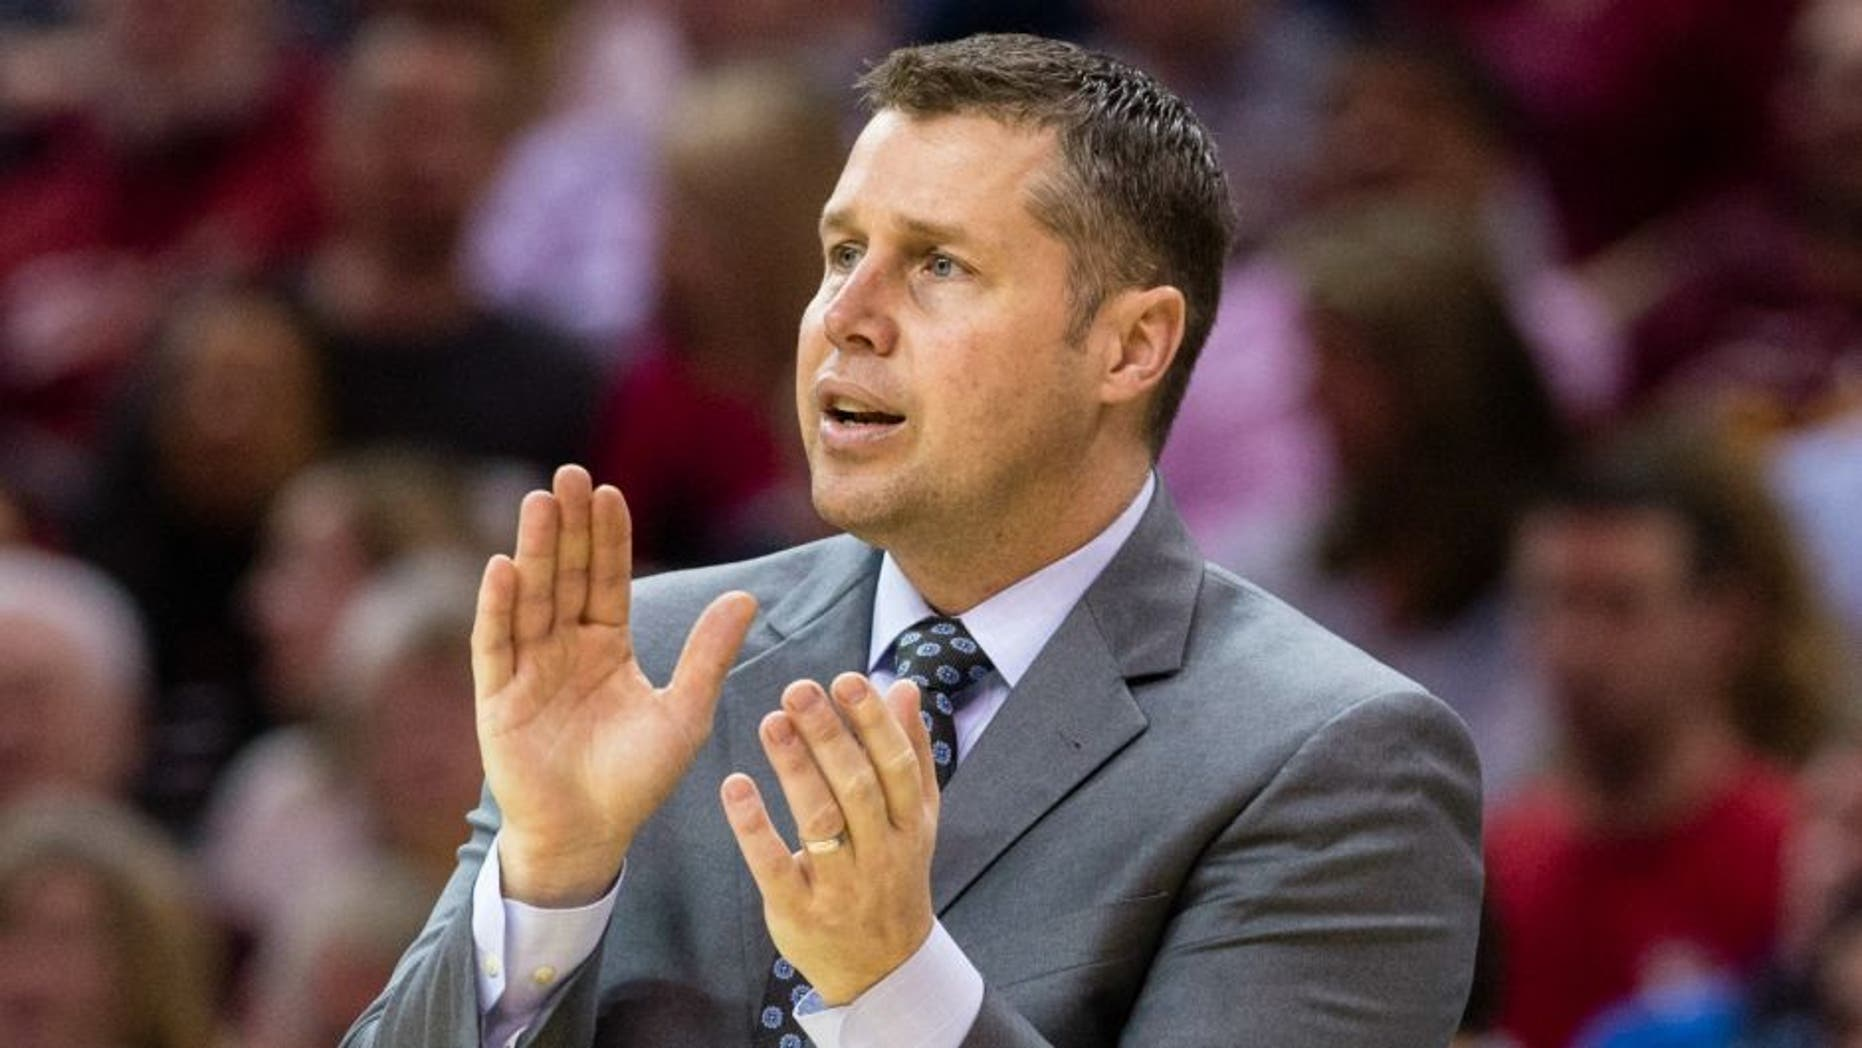 CLEVELAND, OH - MARCH 7: Head coach David Joerger of the Memphis Grizzlies watches his team during the first half against the Cleveland Cavaliers at Quicken Loans Arena on March 7, 2016 in Cleveland, Ohio. NOTE TO USER: User expressly acknowledges and agrees that, by downloading and/or using this photograph, user is consenting to the terms and conditions of the Getty Images License Agreement. Mandatory copyright notice. (Photo by Jason Miller/Getty Images)